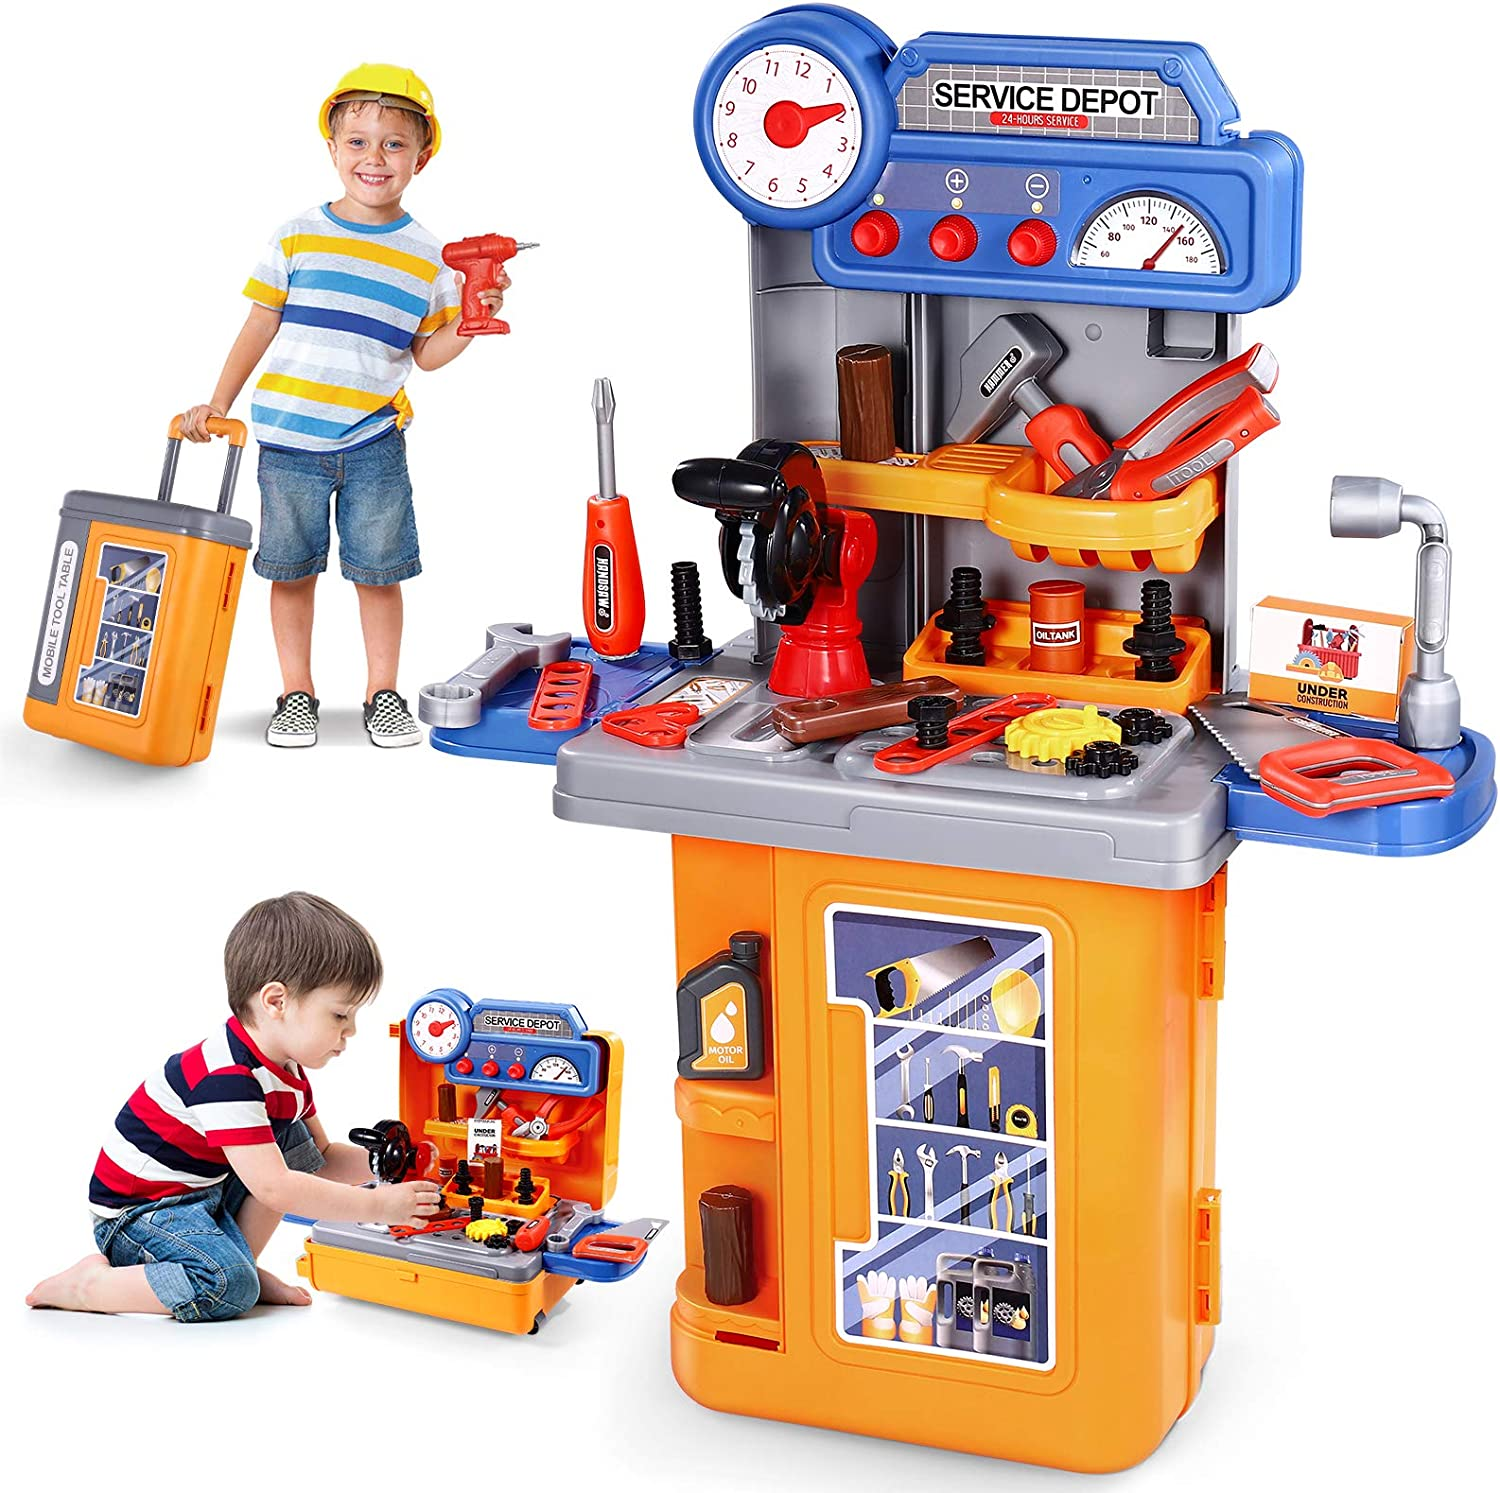 3 in 1 Kids Tool Bench